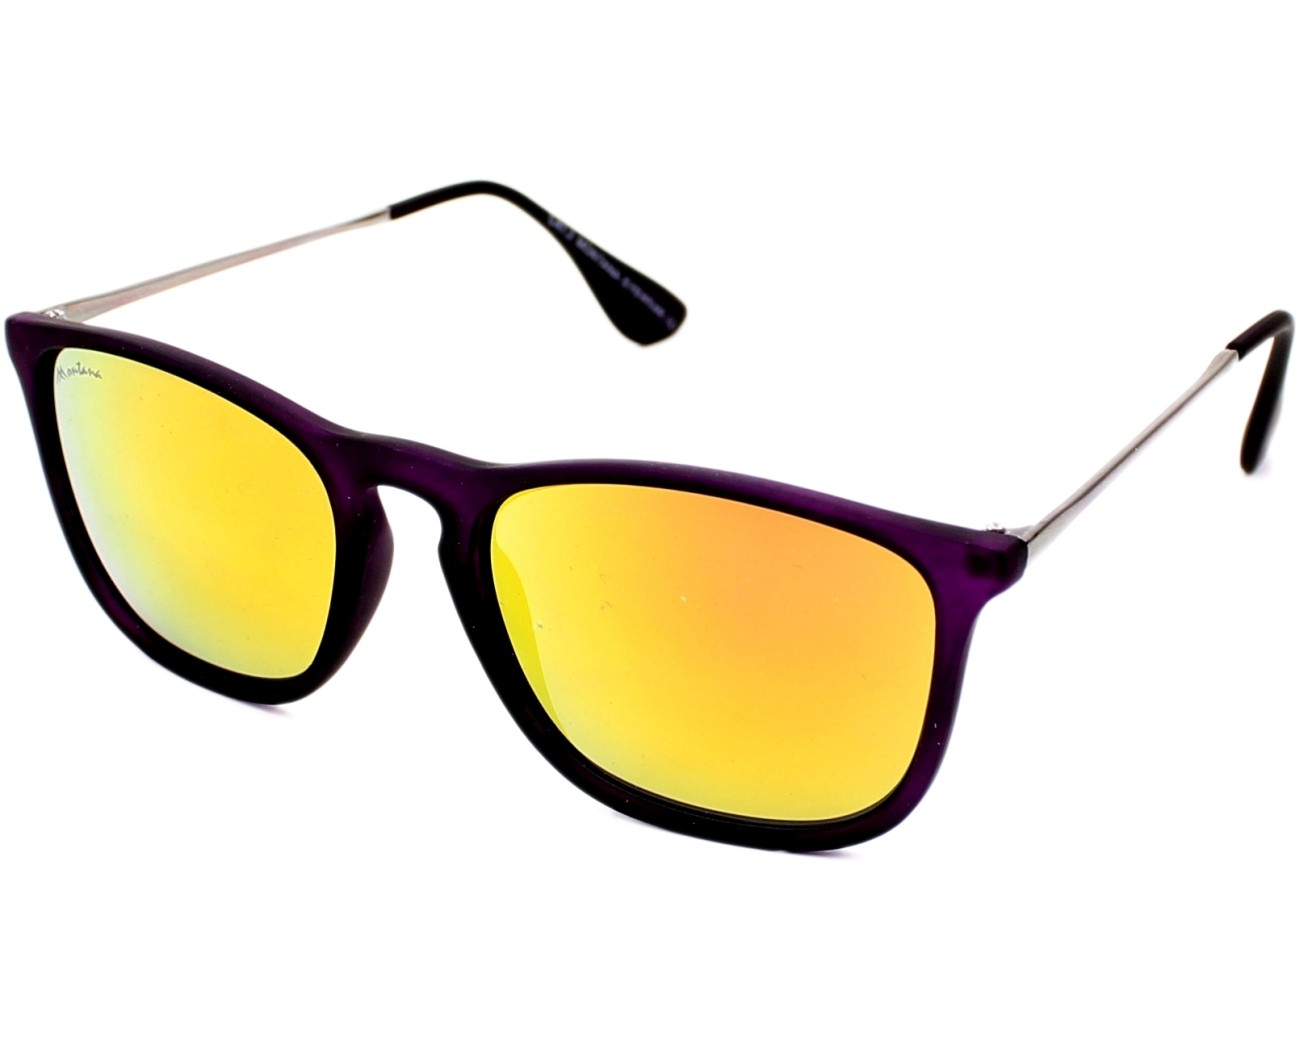 Montana Sunglasses Ms 34 C Buy Now And Save 15 Visionet